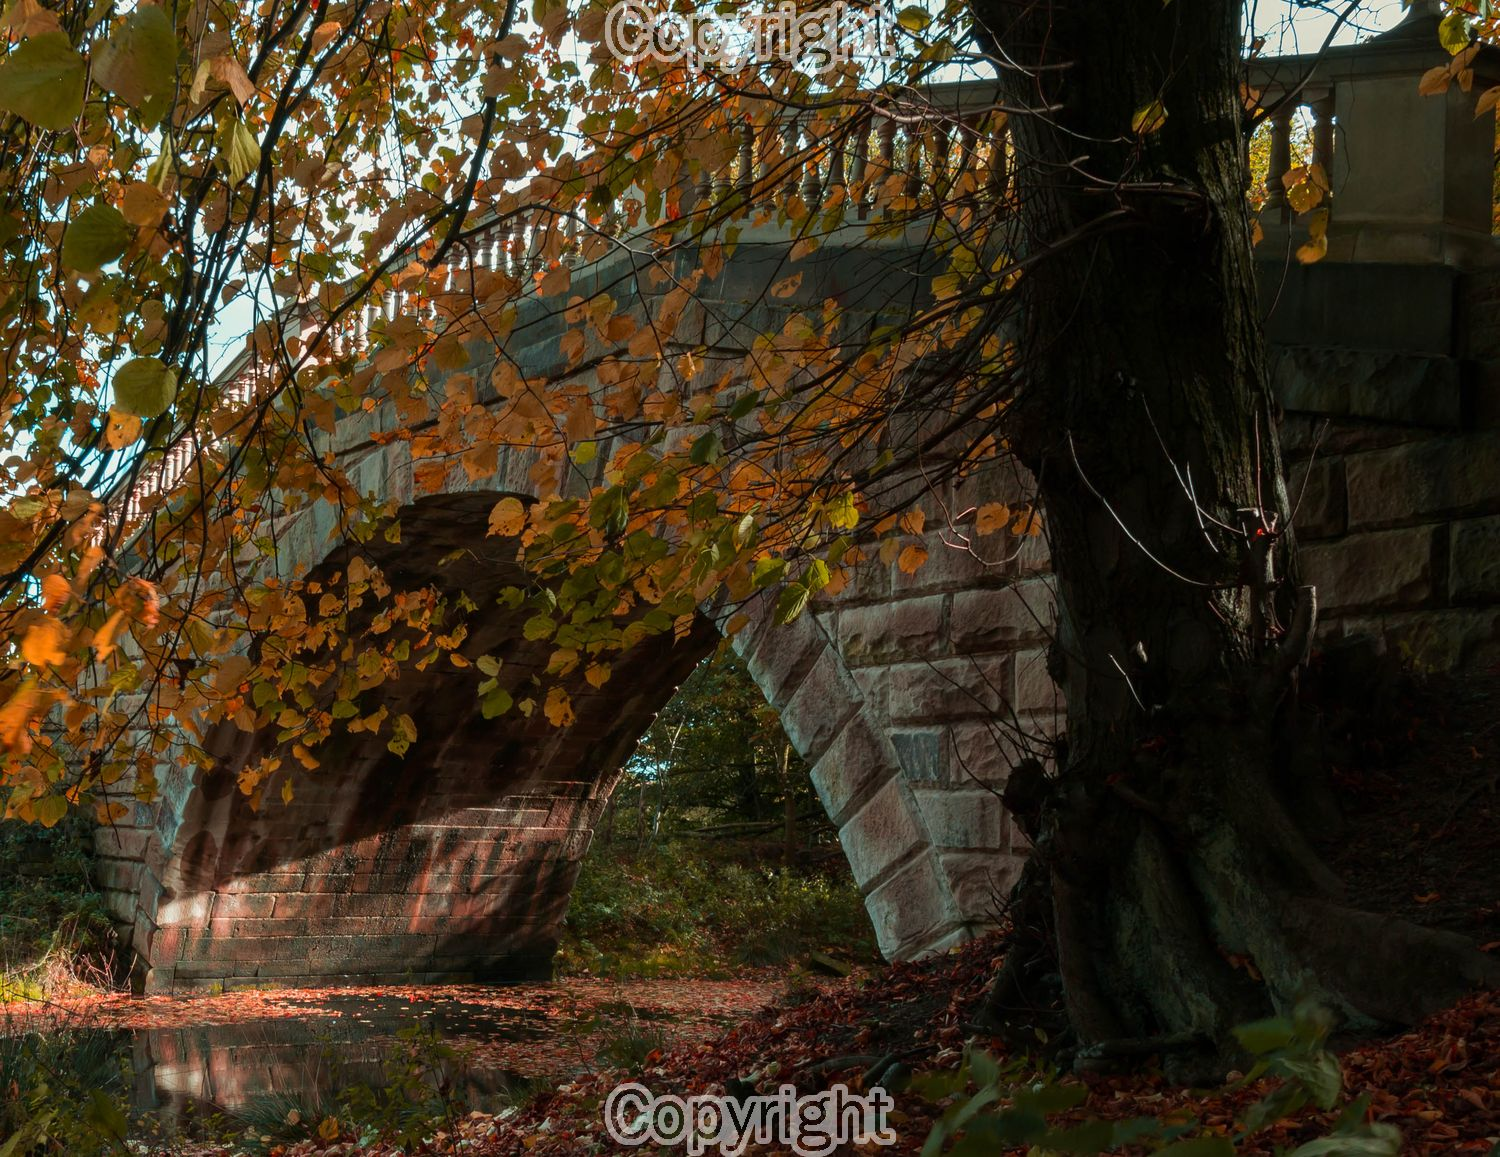 Ian Simpson: Sun light under the bridge  Equipment: Canon 650D & Sigma 17-50mm